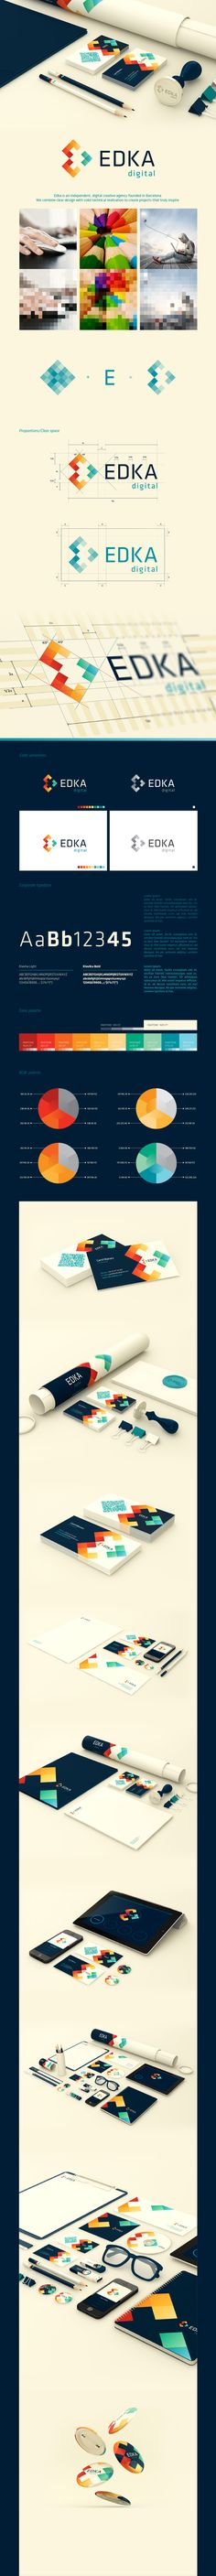 Colorful, geometric logo design for Edka Digital. The branding and corporate identity are eye-catching in this graphic design by Vio Pintilie and Camil Blanaru. Corporate Design, Brand Identity Design, Graphic Design Typography, Corporate Identity, Logo Typo, Logo Branding, Branding Process, Marketing Branding, Branding Agency